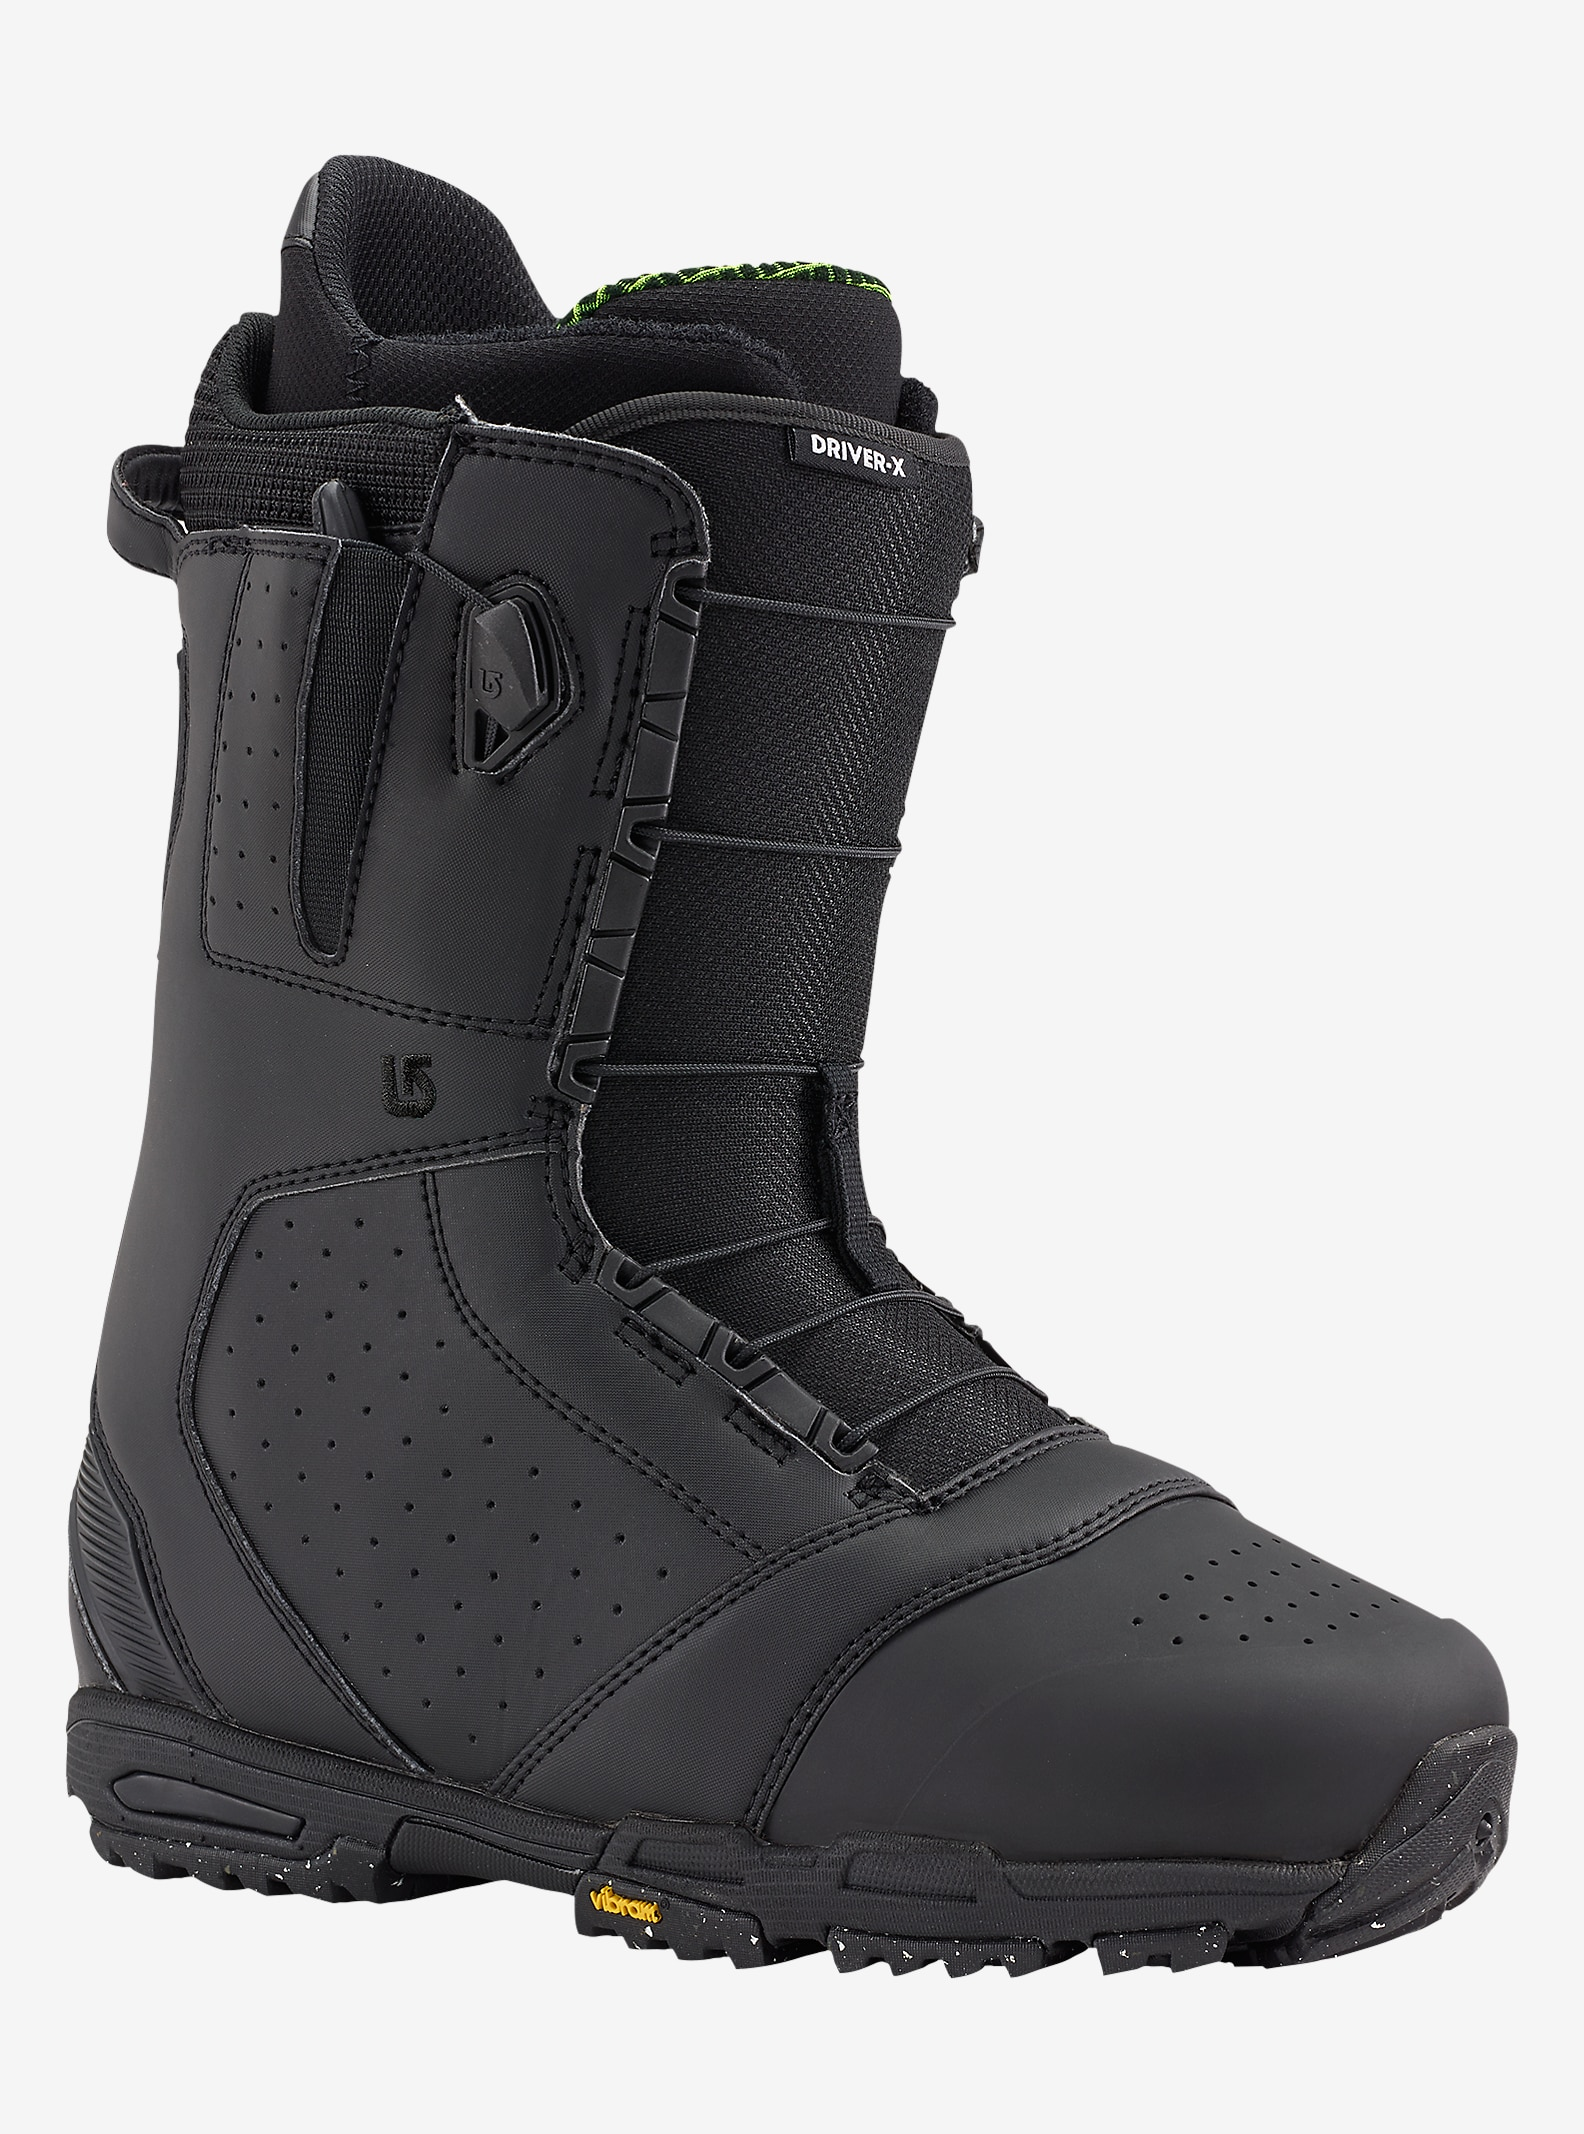 Burton Driver X Snowboard Boot shown in Black